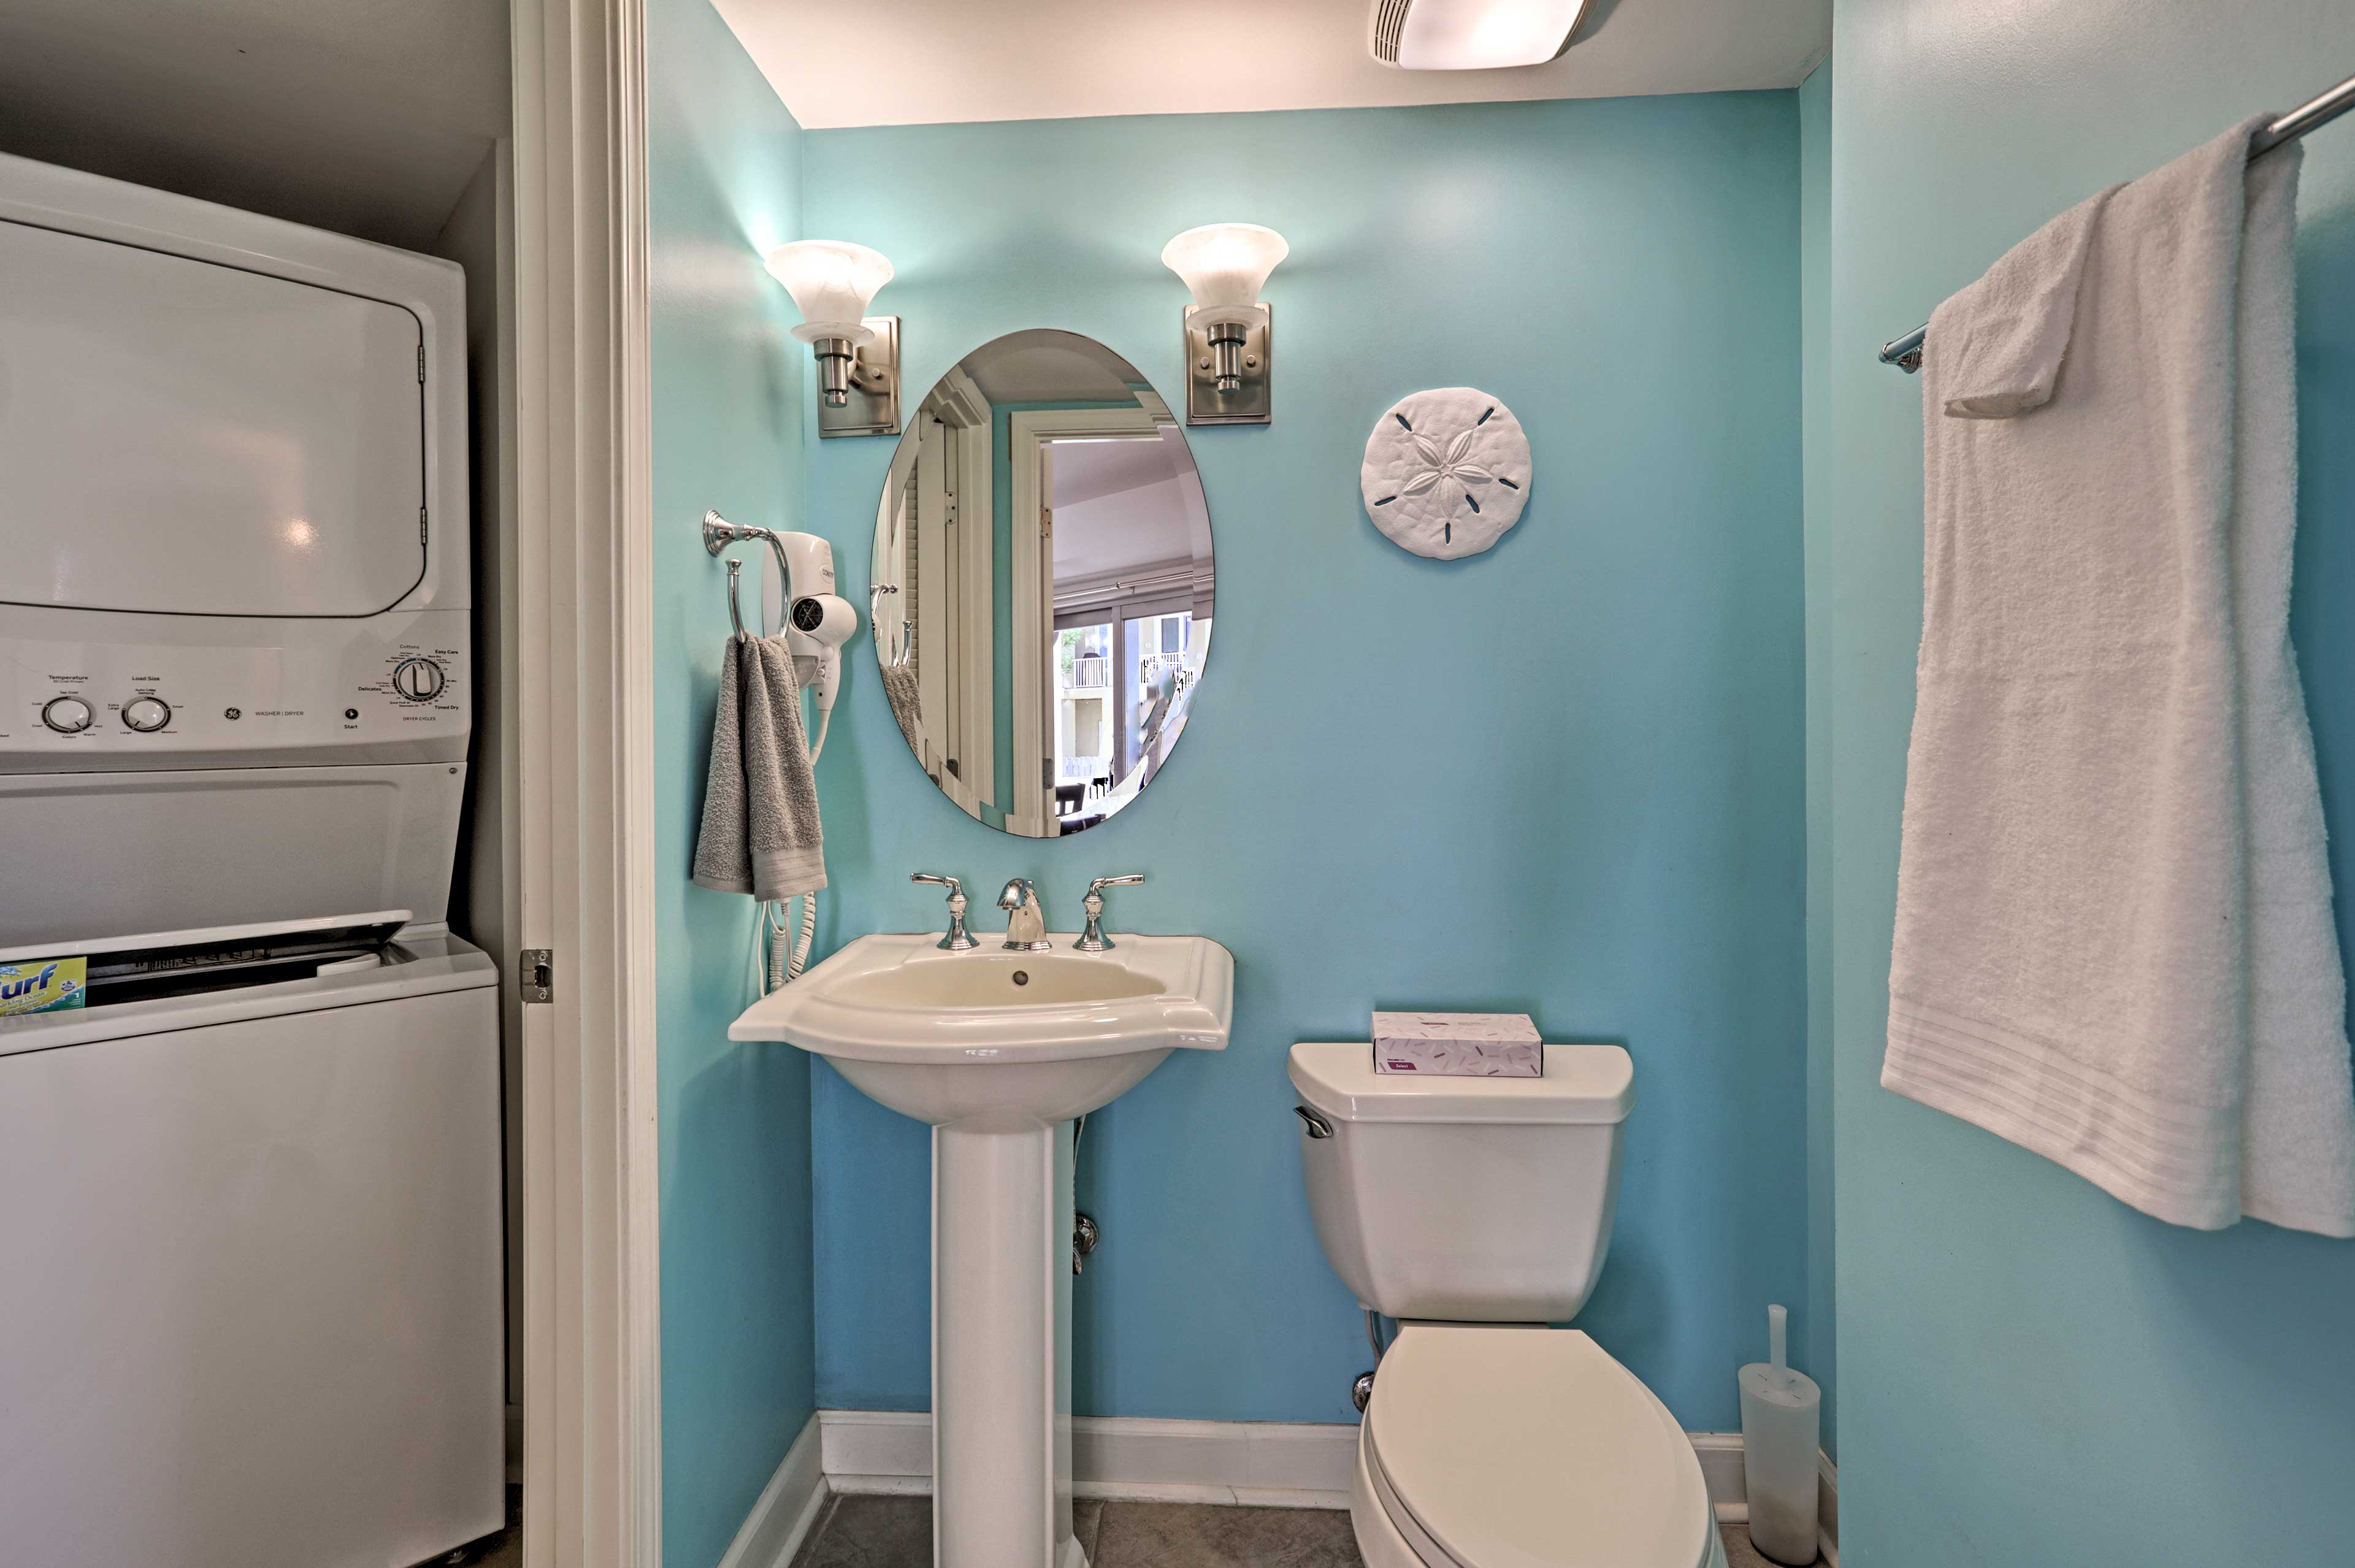 The half-bath is located next to the washer and dryer.